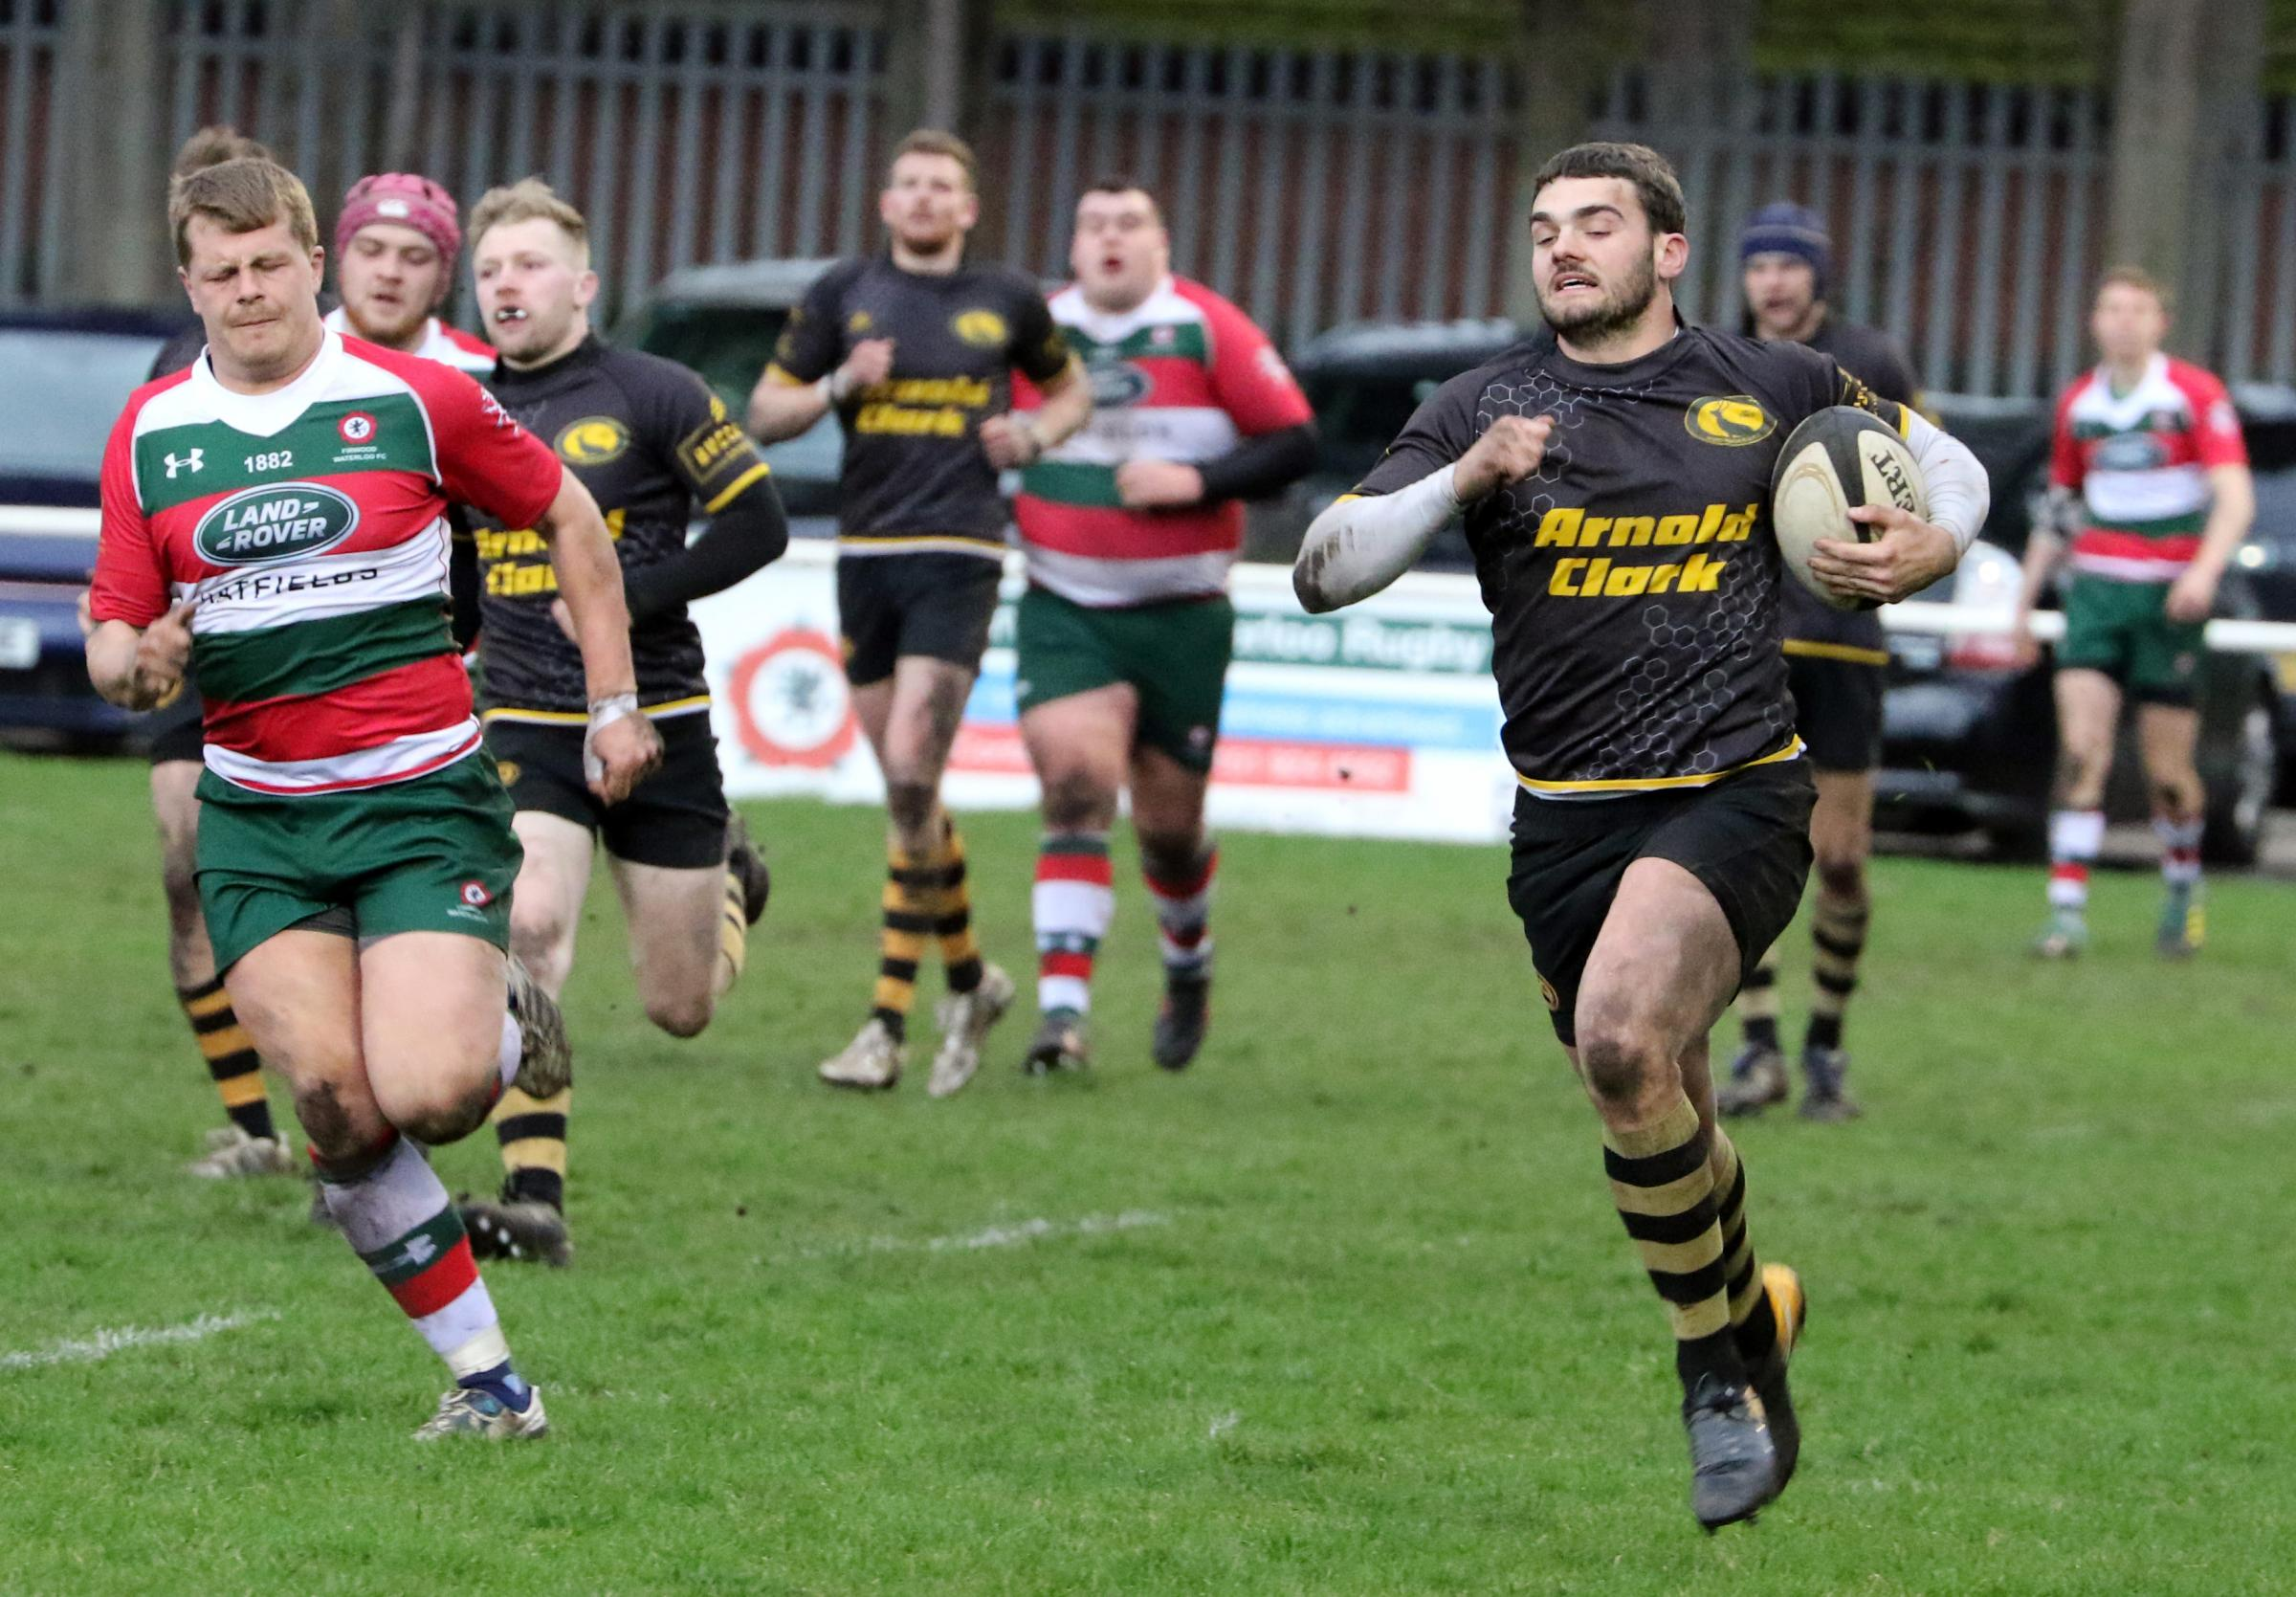 Joel Barber scored a hat-trick of tries for Northwich when they completed a double over Firwood Waterloo with a 27-20 victory at the Memorial Ground on Saturday. Picture: Ken Houghton